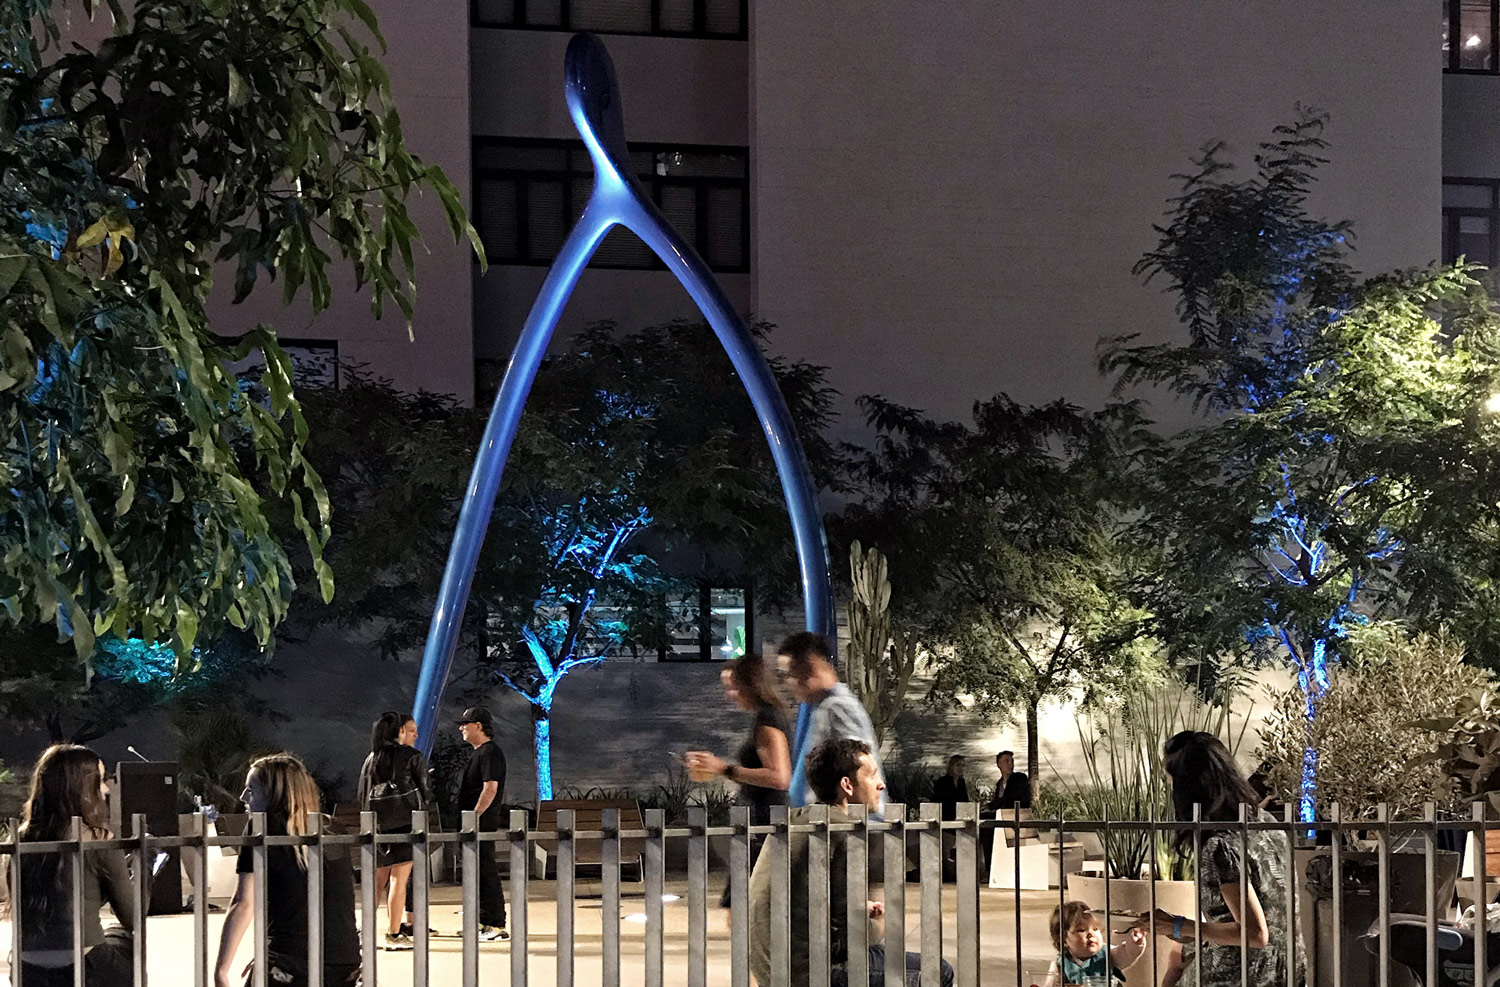 night shot of people in a courtyard with a large blue sculpture in the background